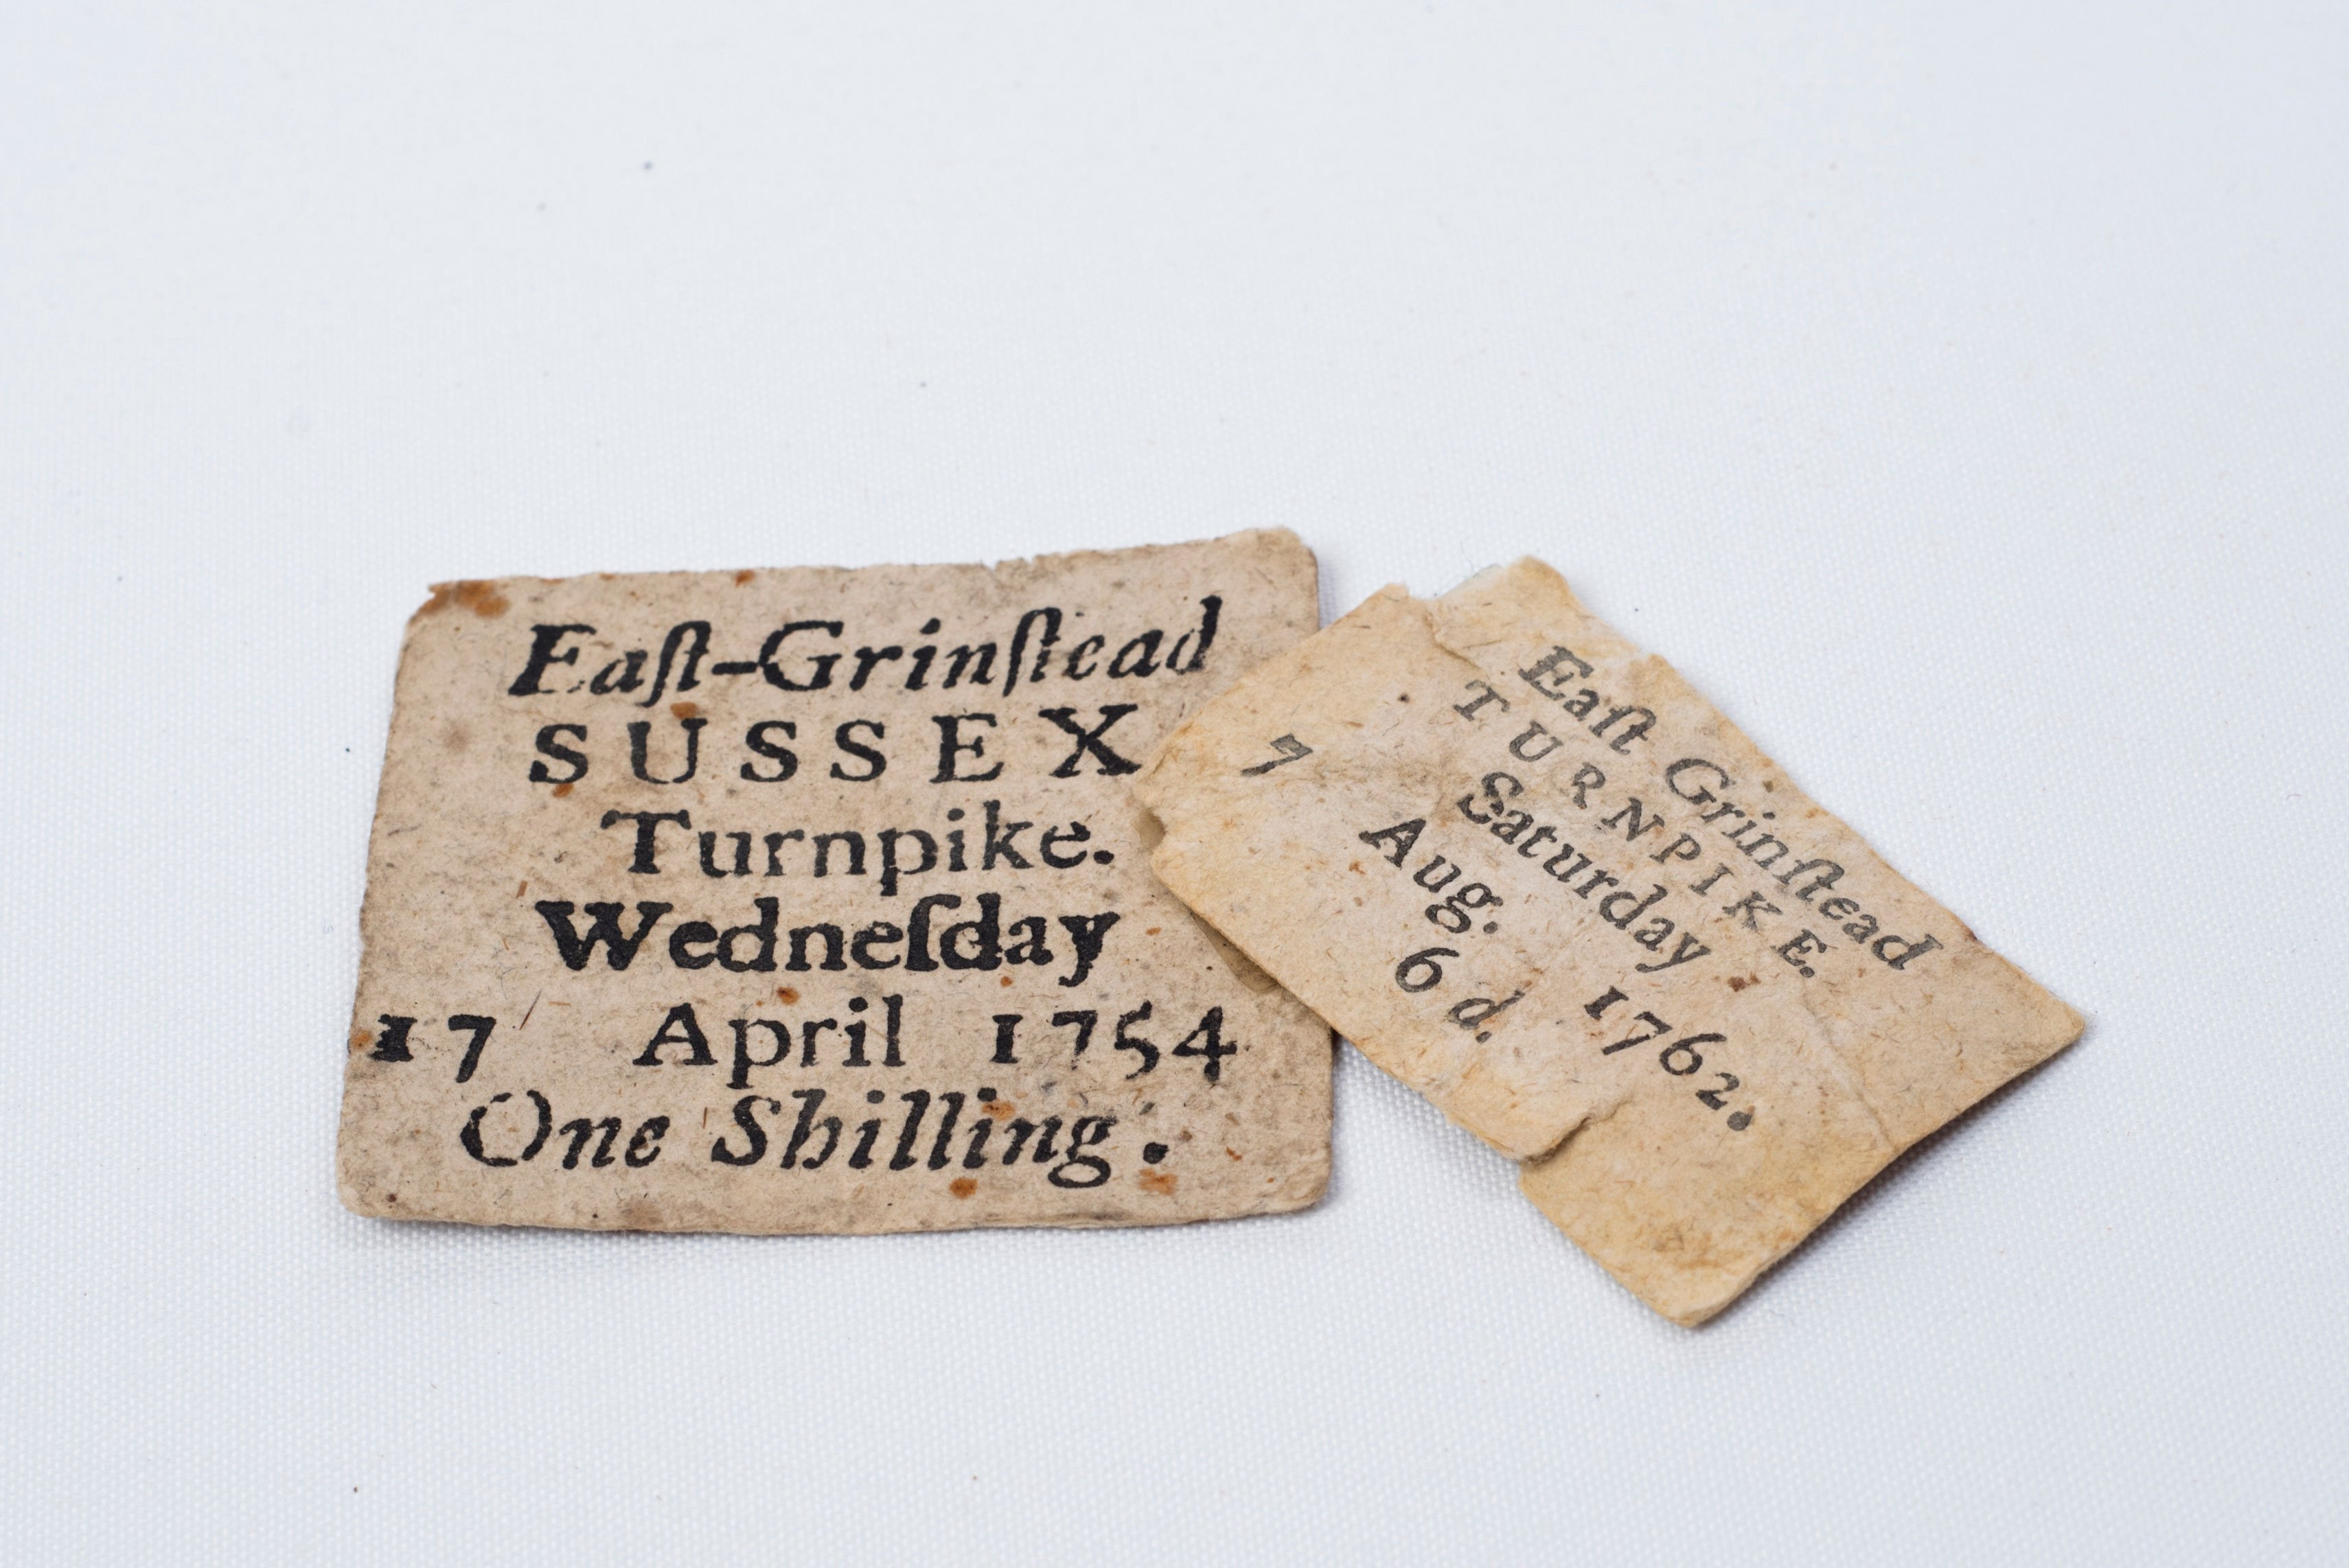 Turnpike Tickets – East Grinstead Museum